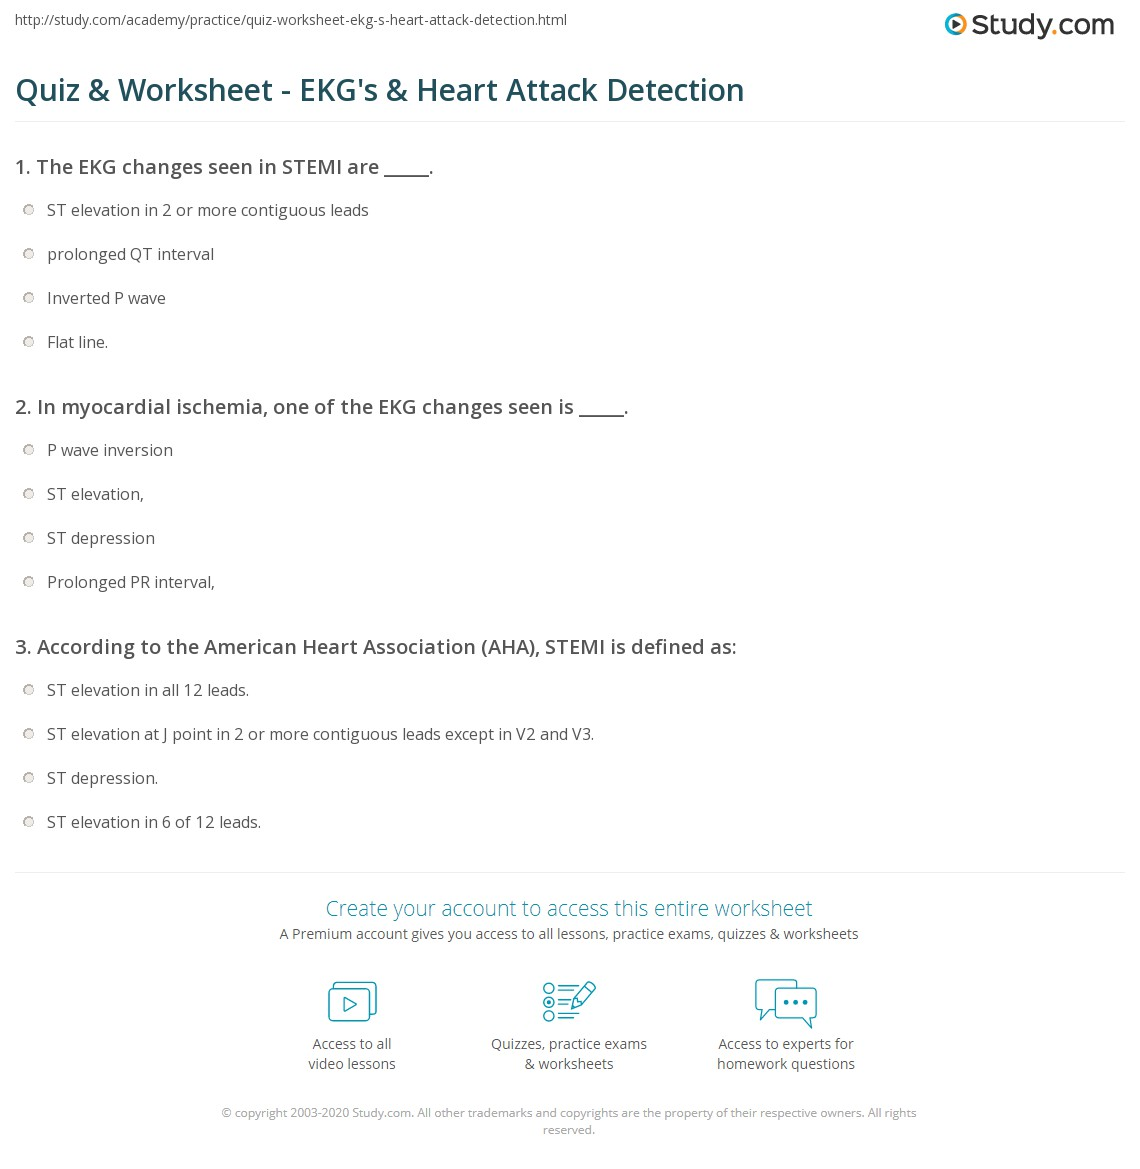 Quiz Worksheet Ekgs Heart Attack Detection Study